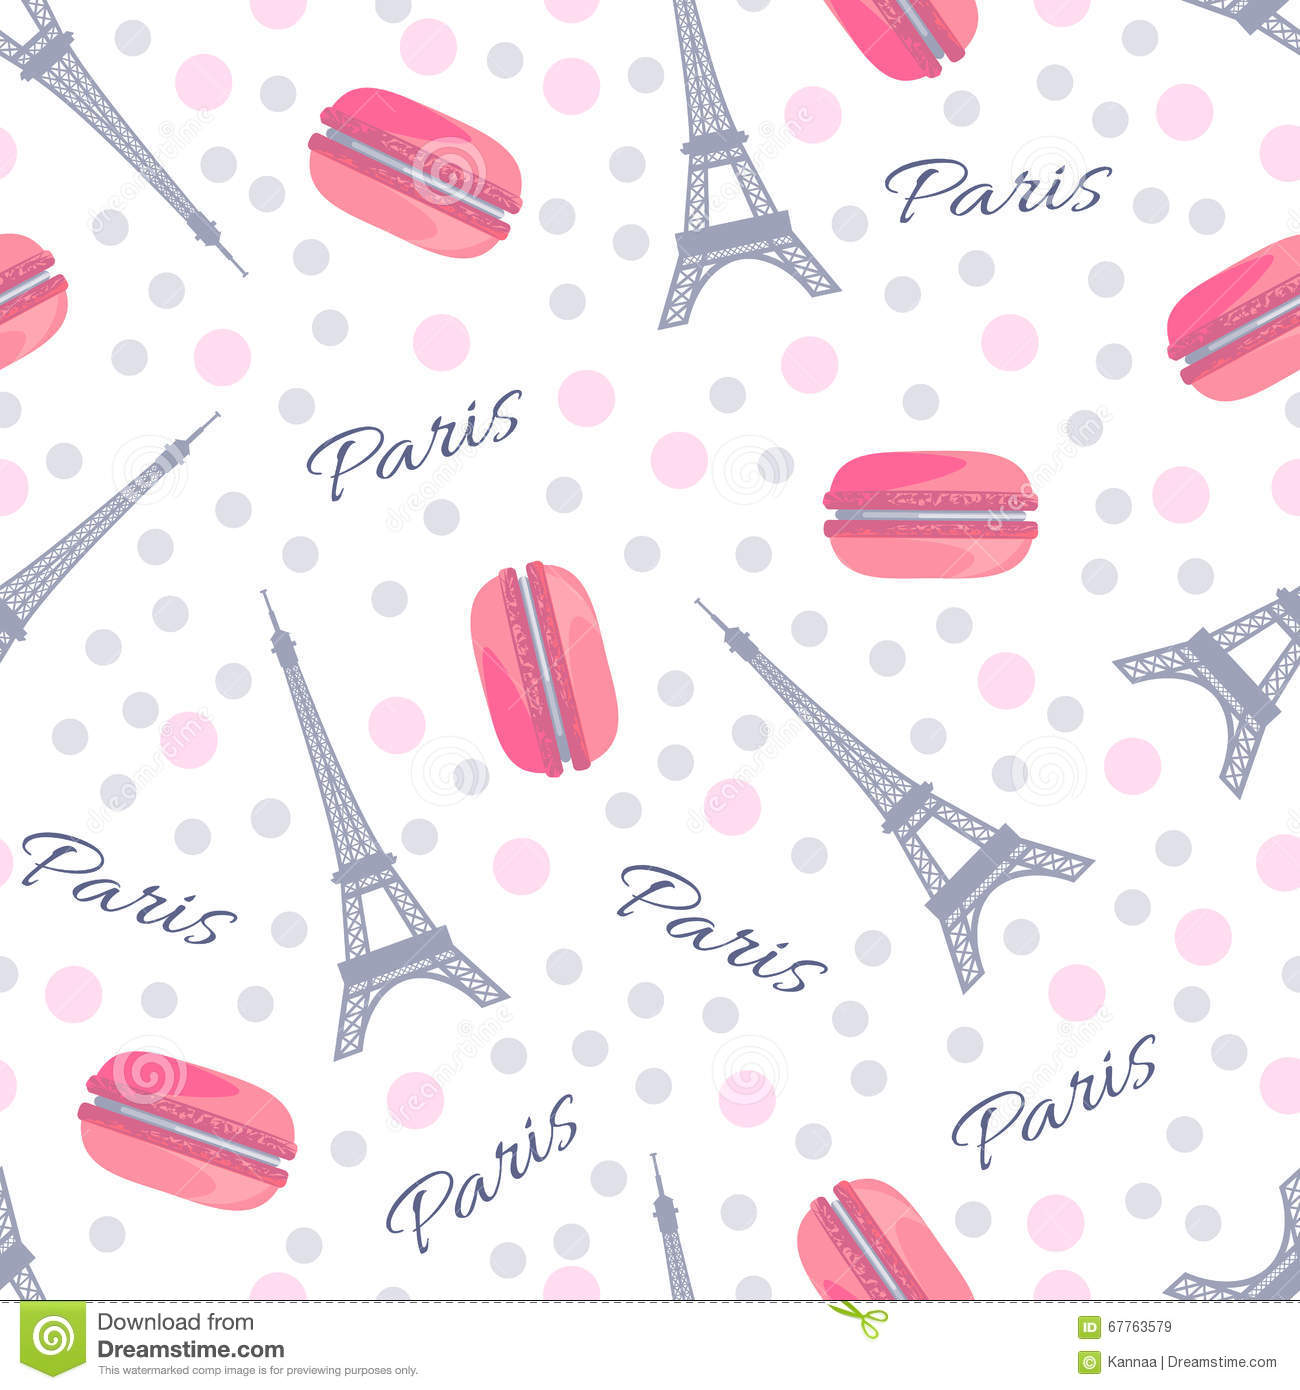 Seamless pattern with tasty macaroons, Eiffel Tower, Paris and dots